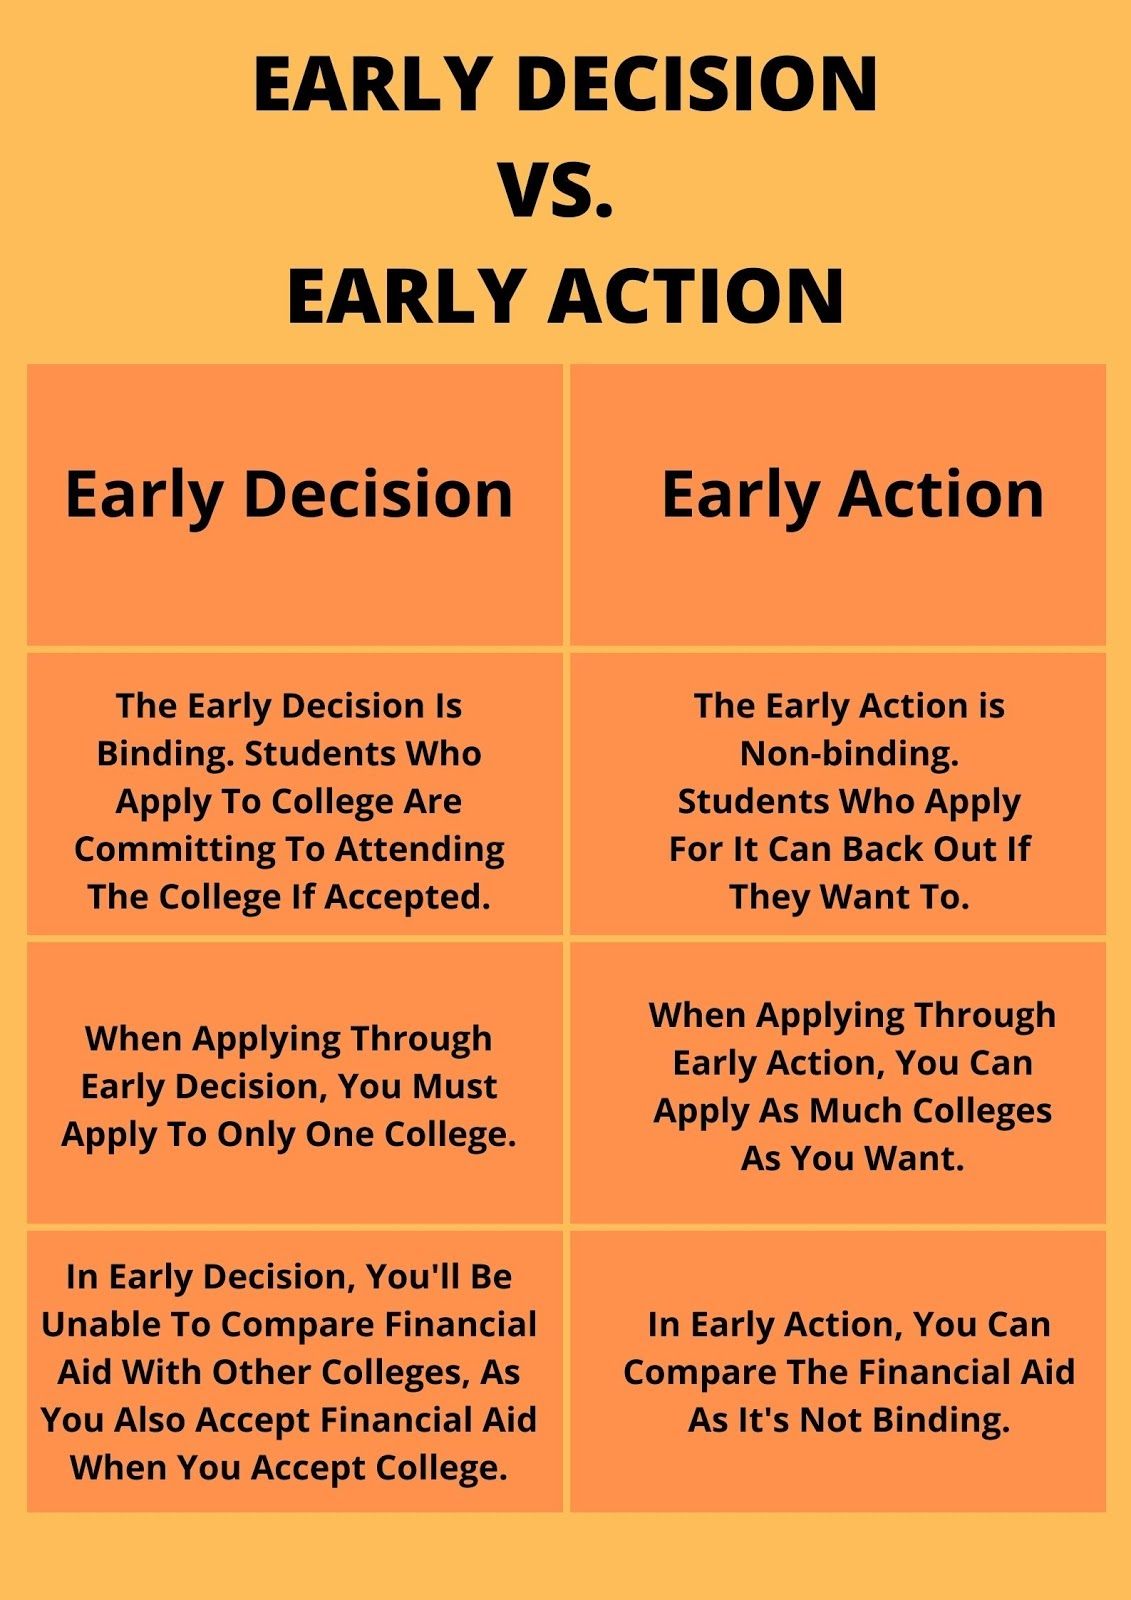 Early Decision Vs. Early Action